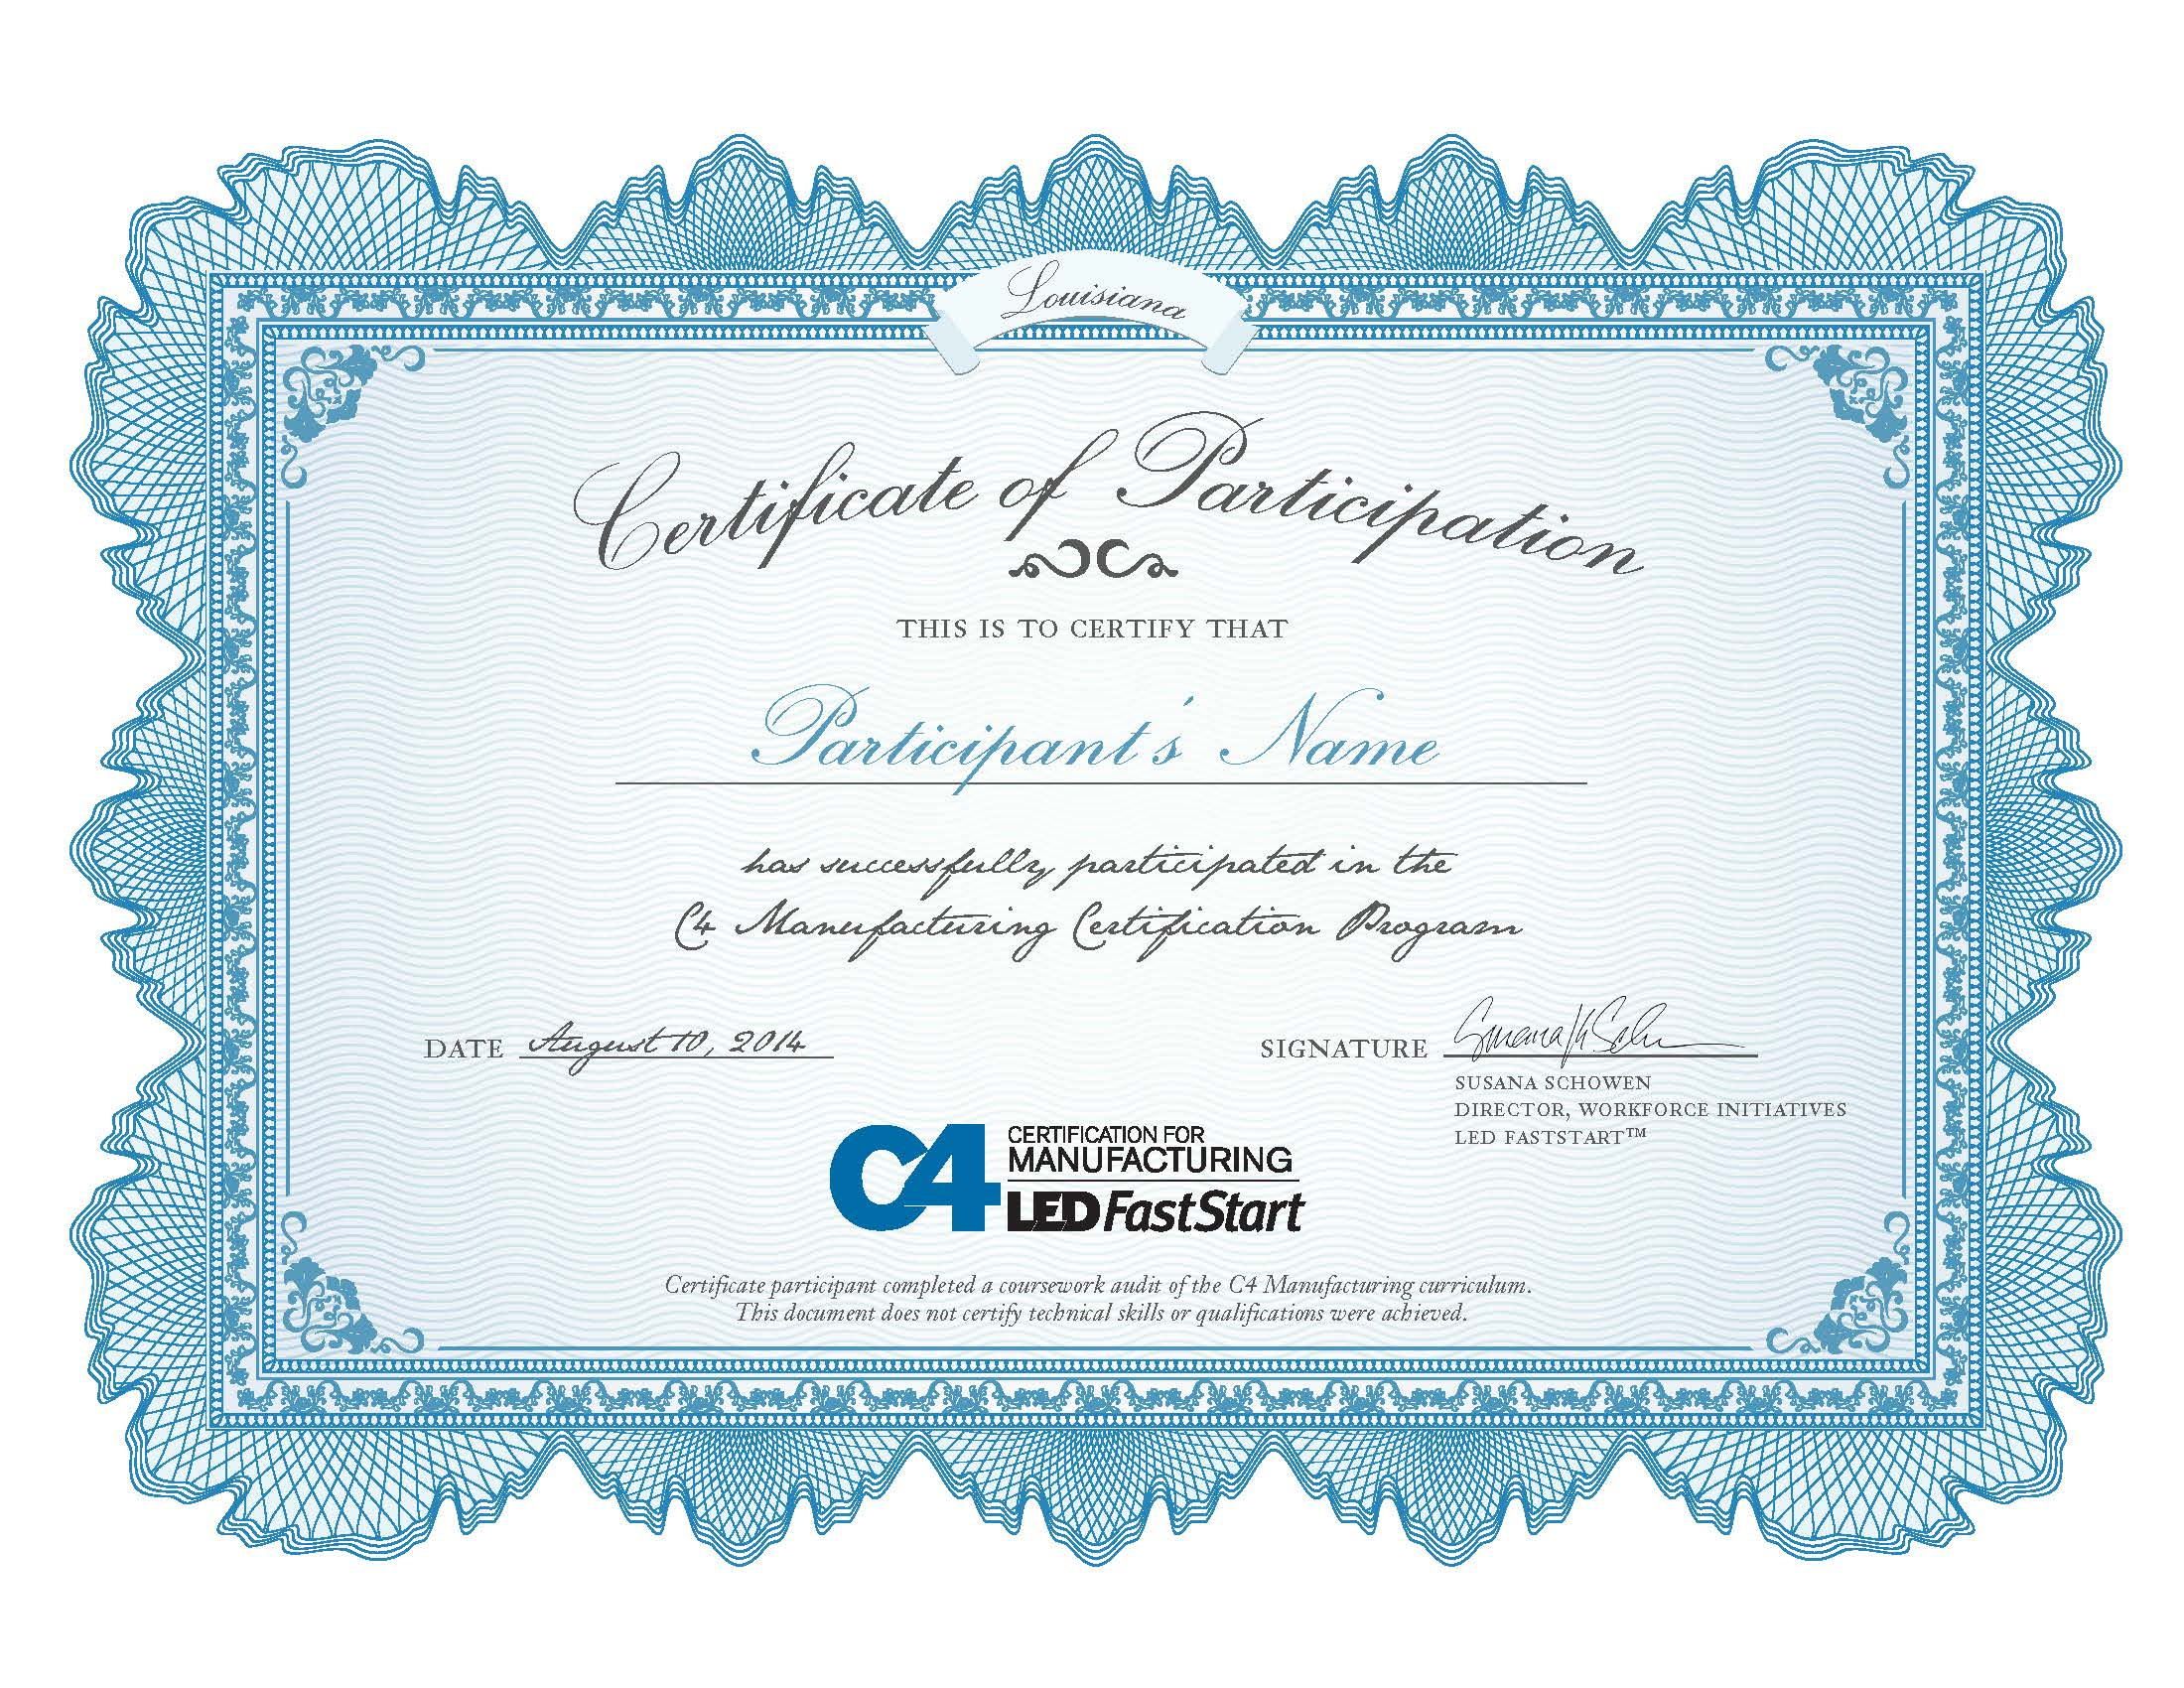 Certification for manufacturing c4m c4manufacturing certificate xflitez Gallery